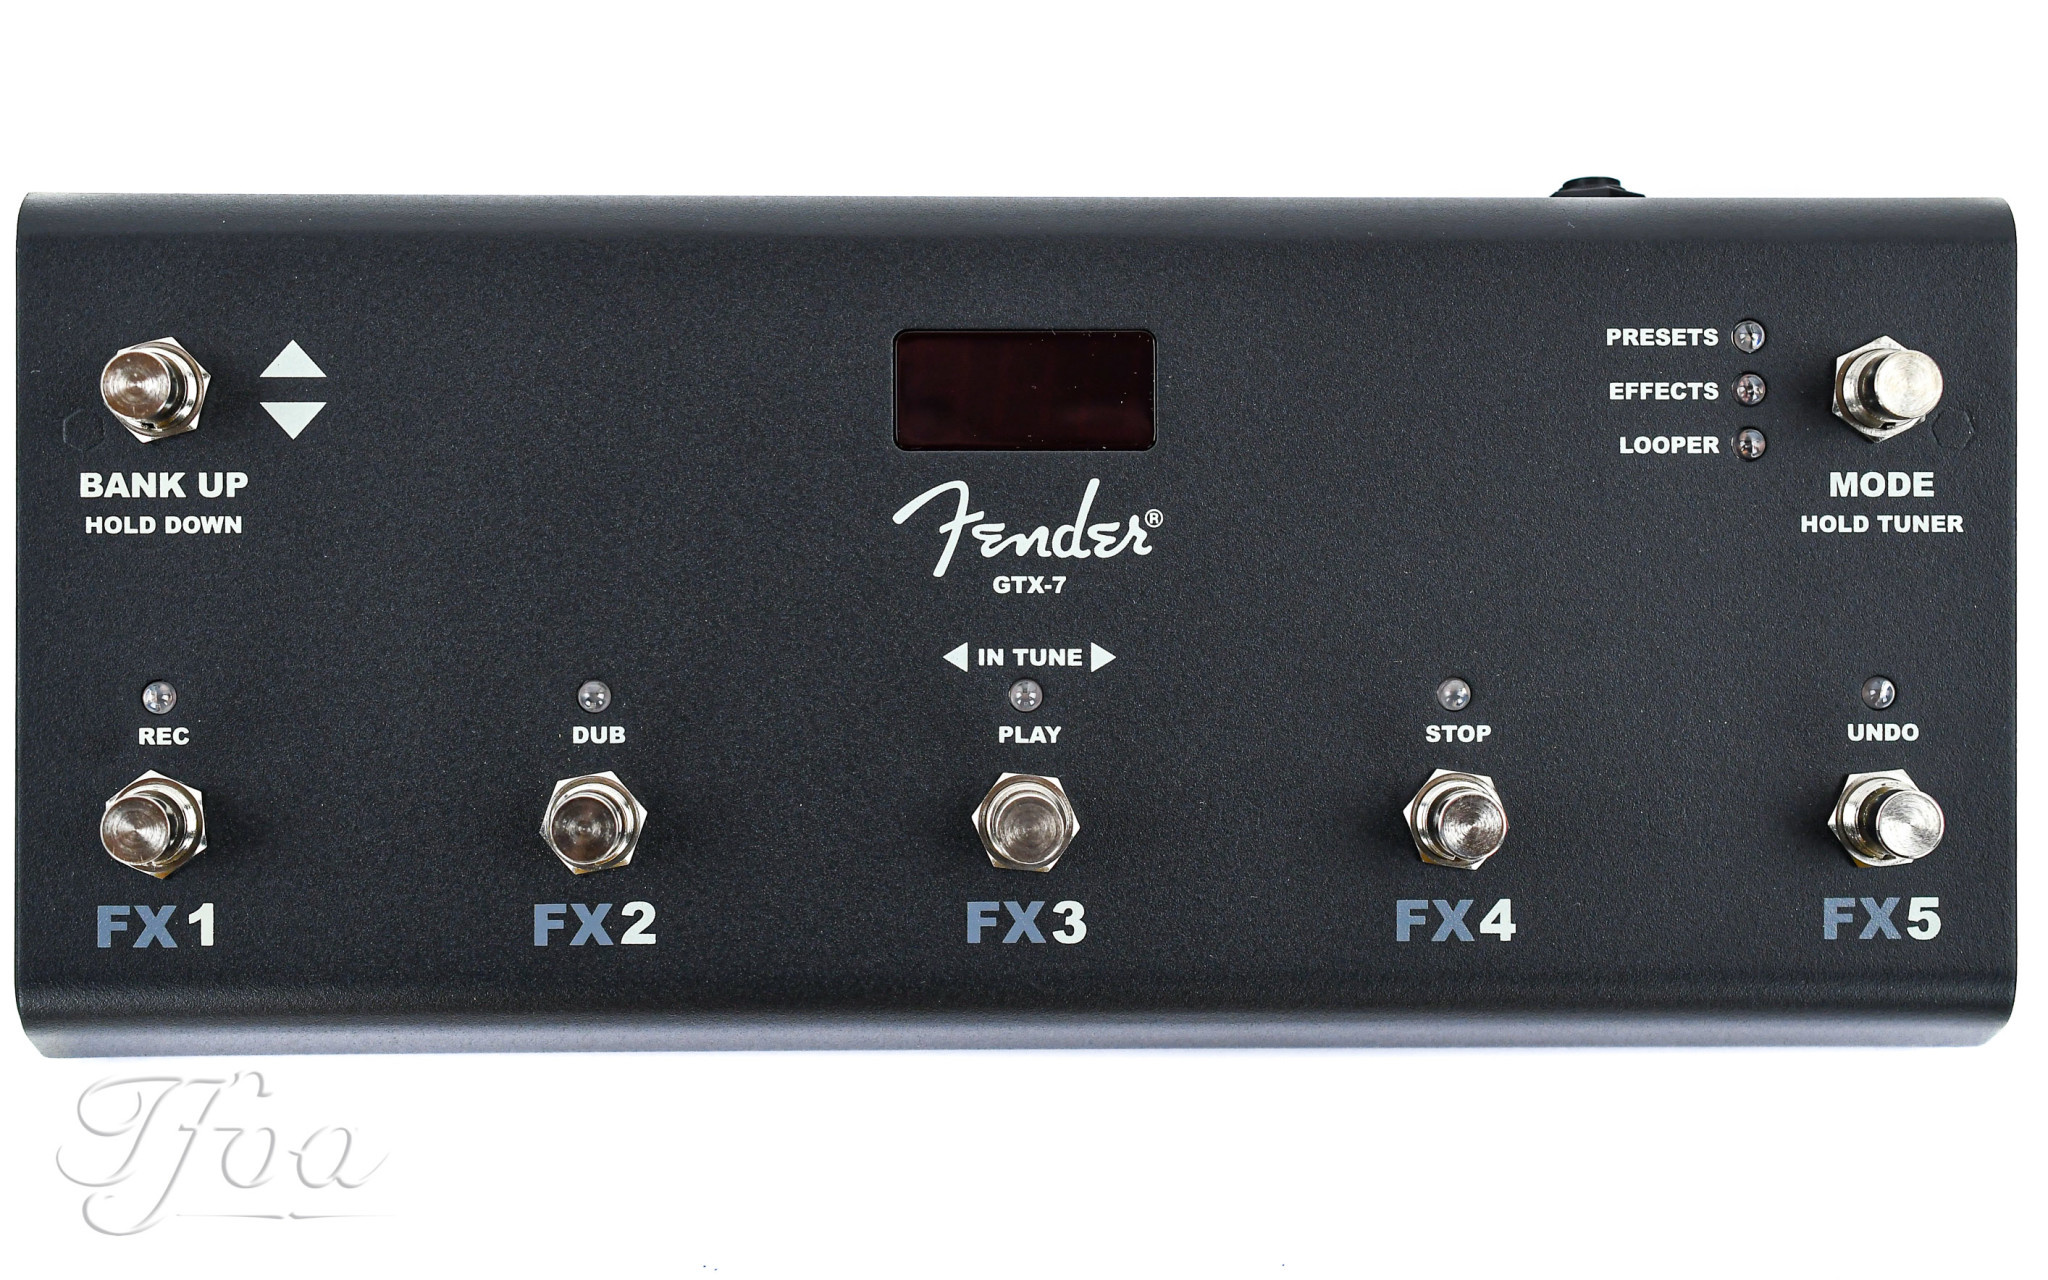 Fender GTX 7 Footswitch B-Stock